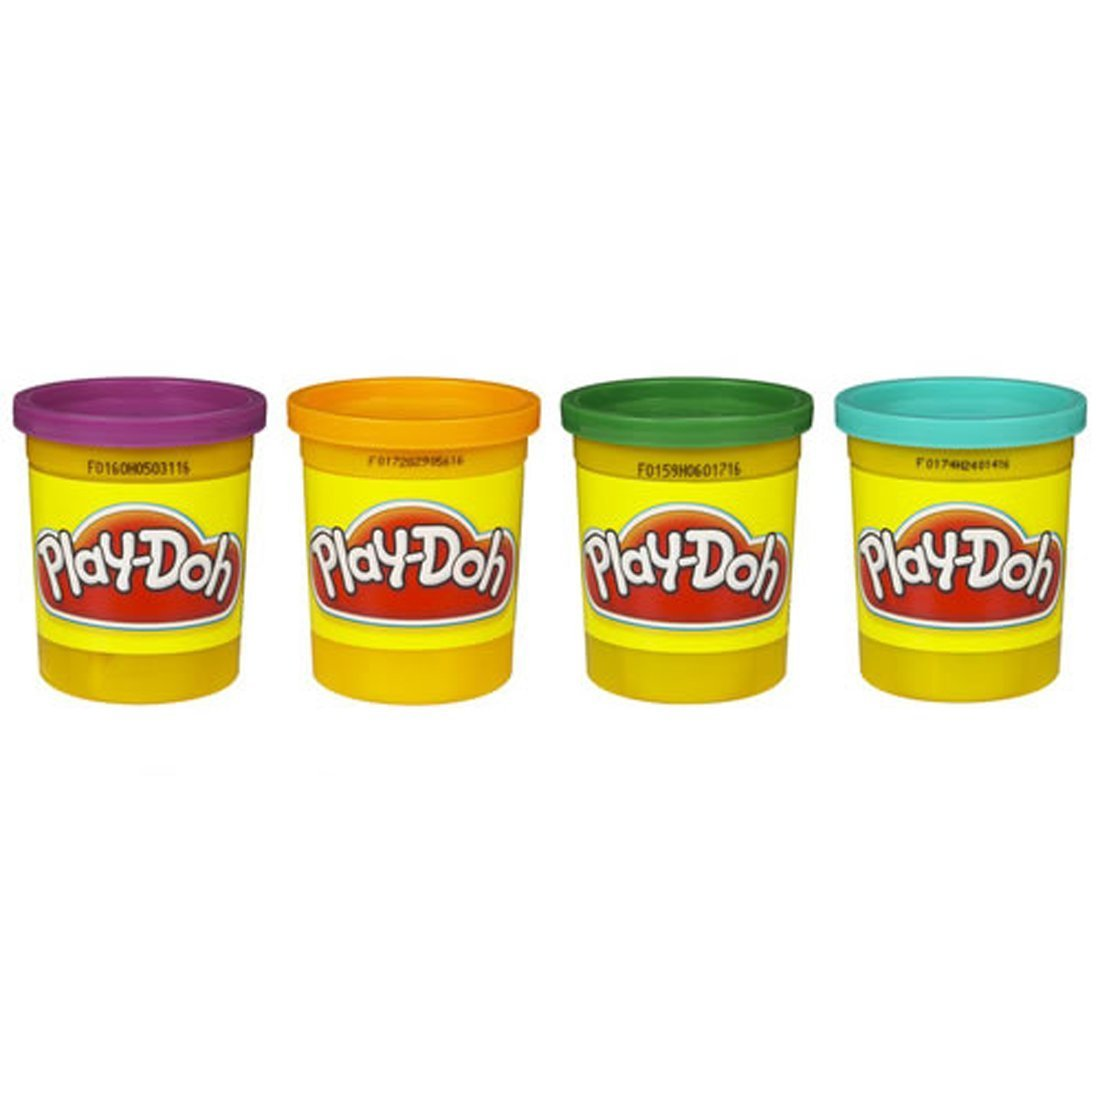 Hasbro Play Doh 4 Pack of Colors 16 Ounce Total Purple Orange Green Blue